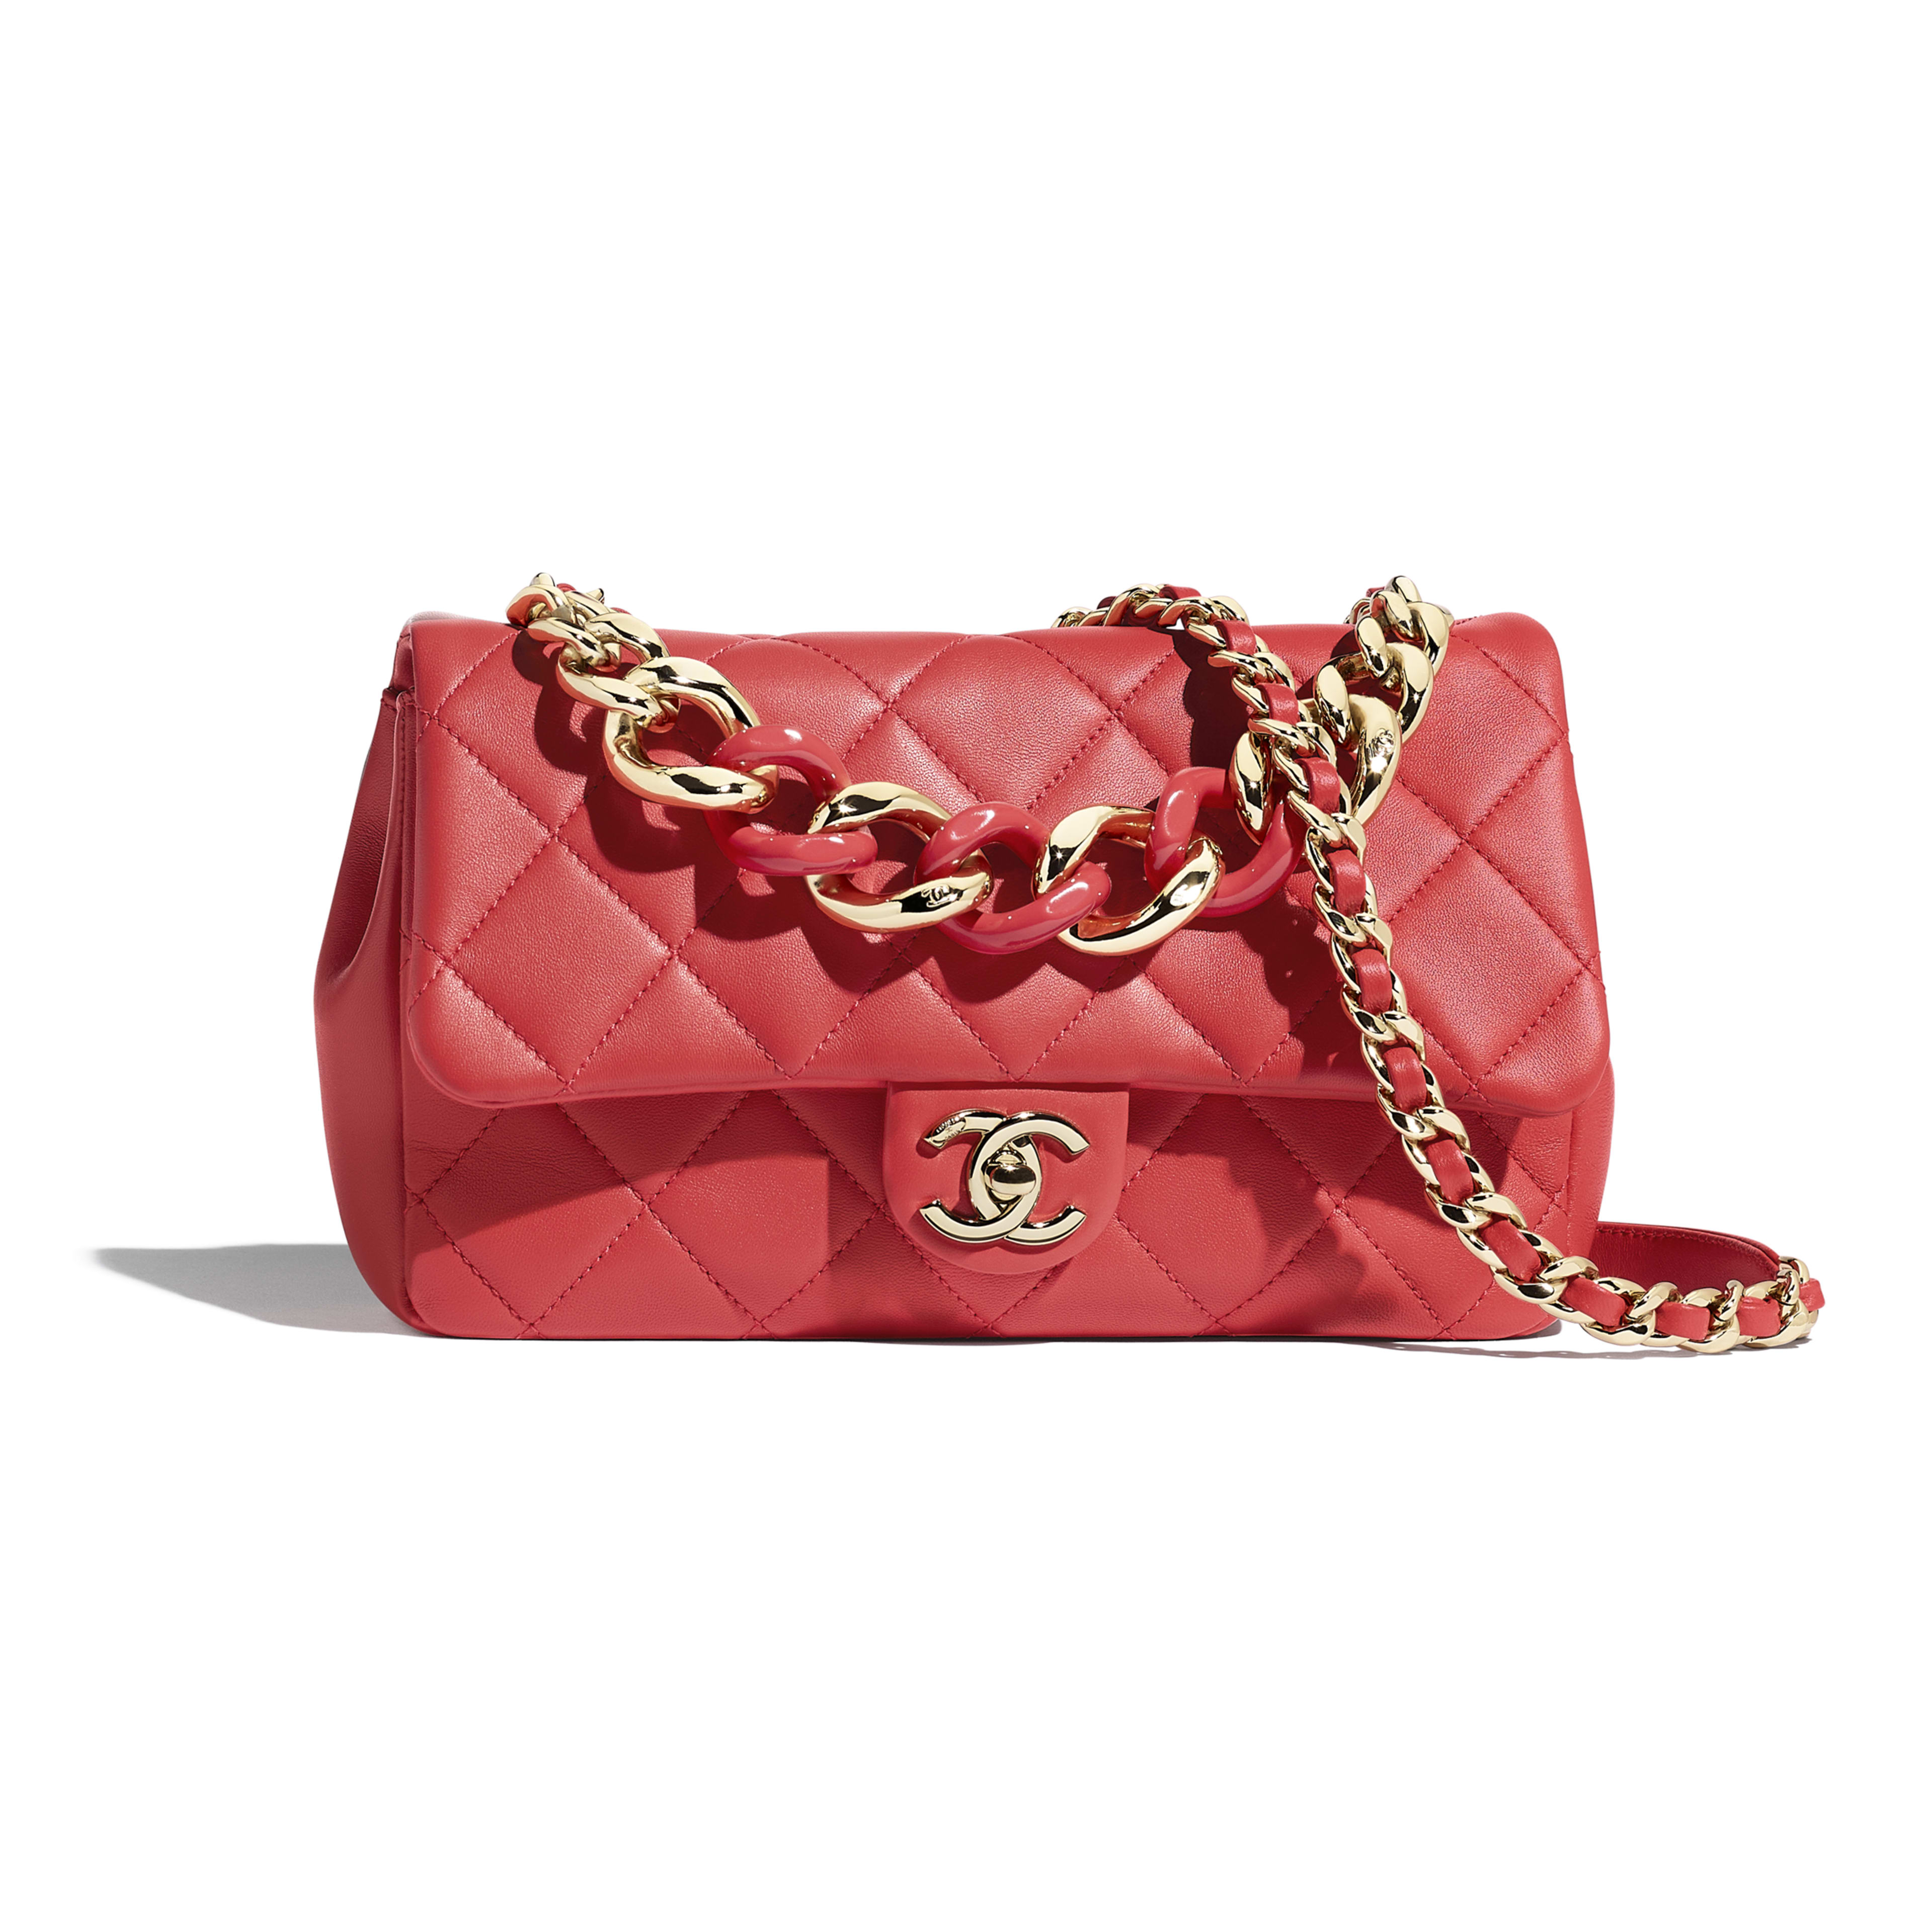 Flap Bag - Red - Lambskin, Resin & Gold-Tone Metal - Default view - see full sized version